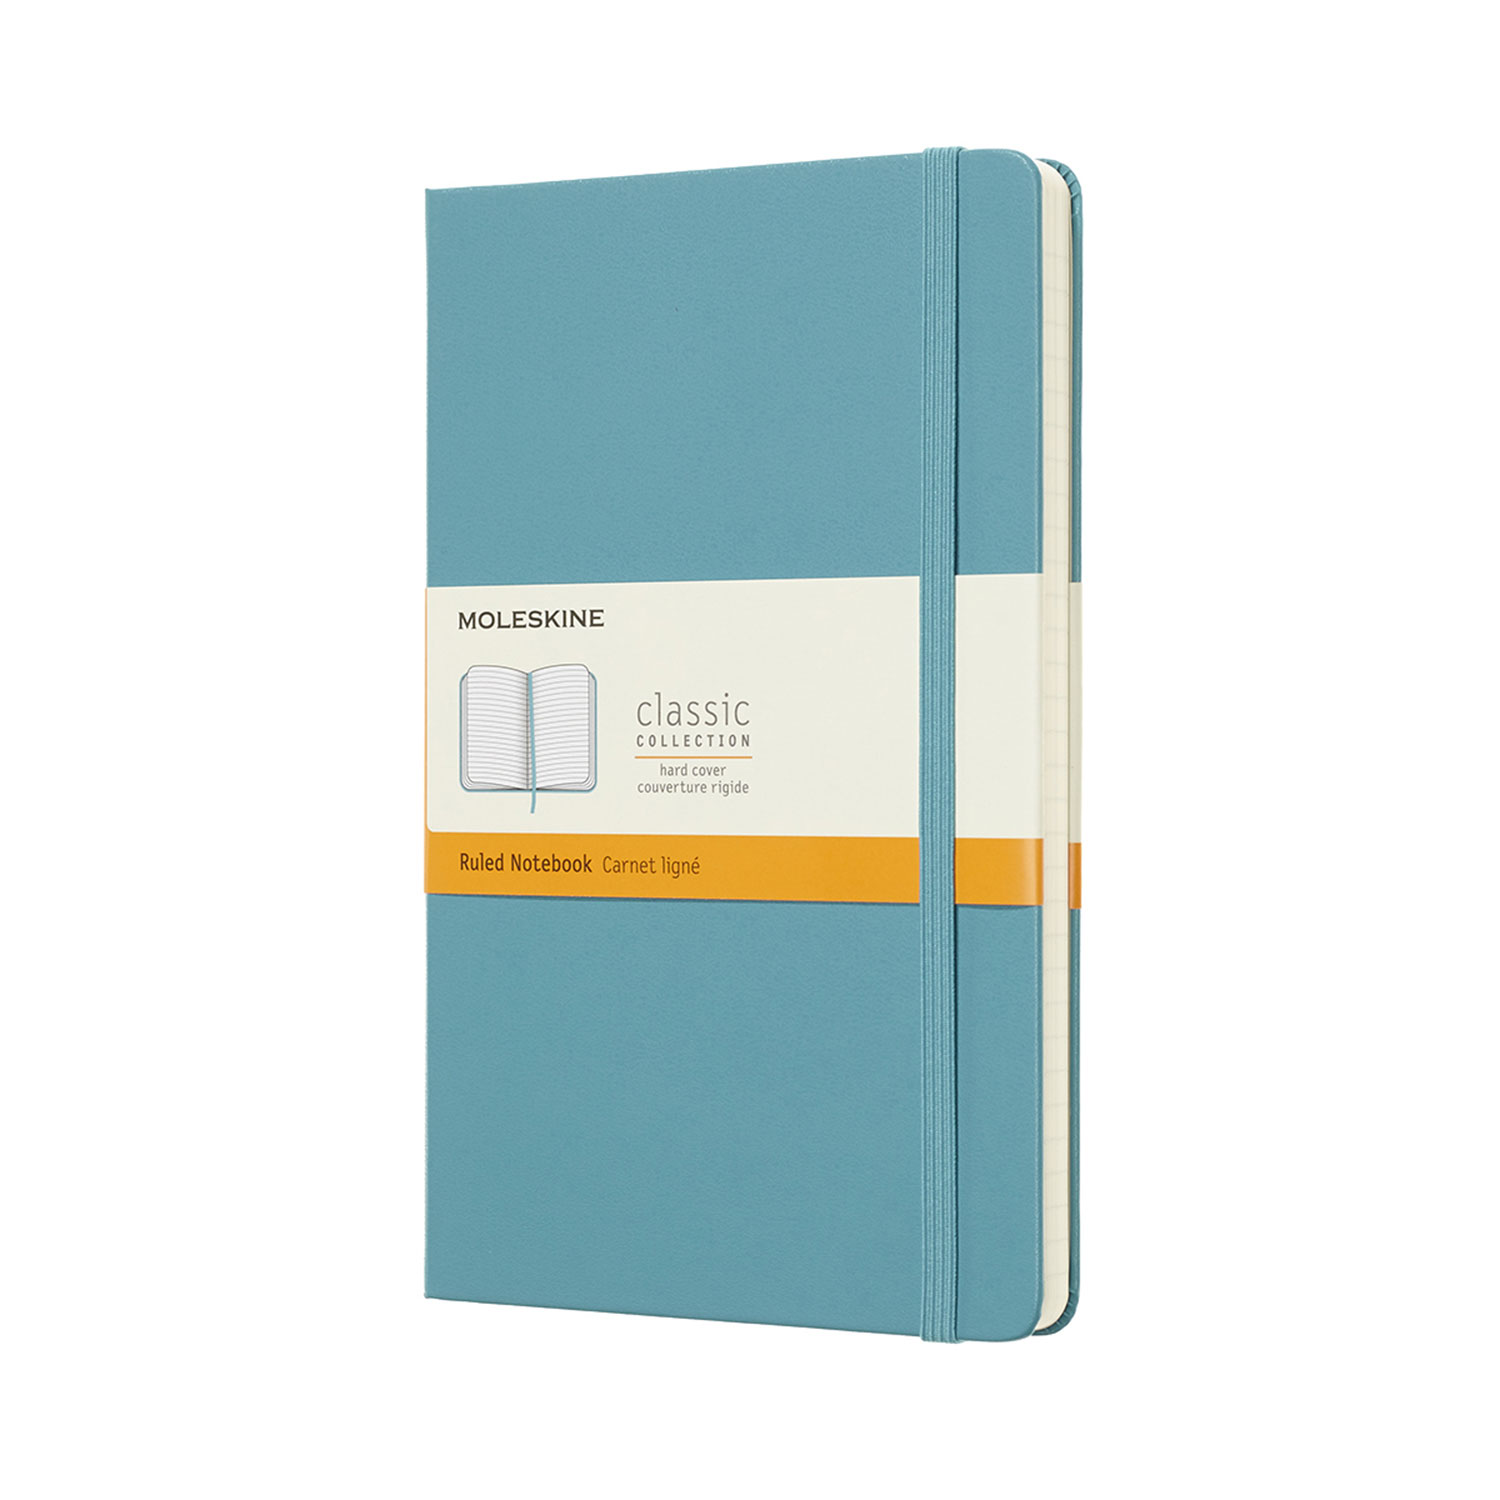 Branded Moleskine Notebooks - Classic Hardback Coloured